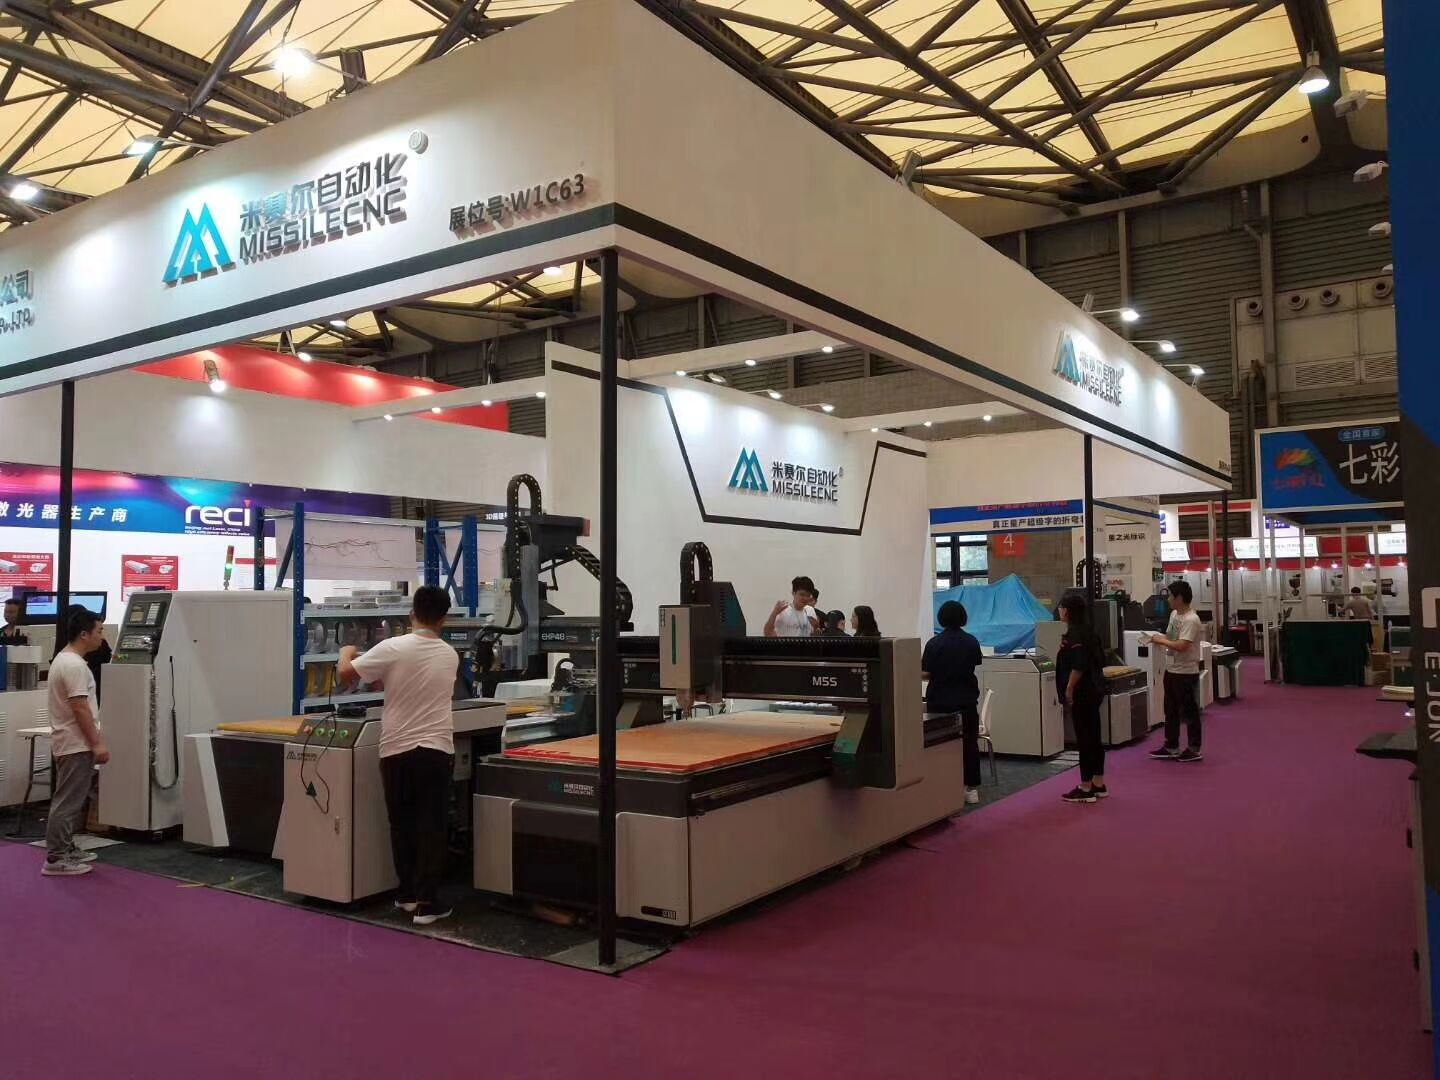 Exhibition Preview:The 16th Shanghai International Advertising Exhibition 9.19-9.21